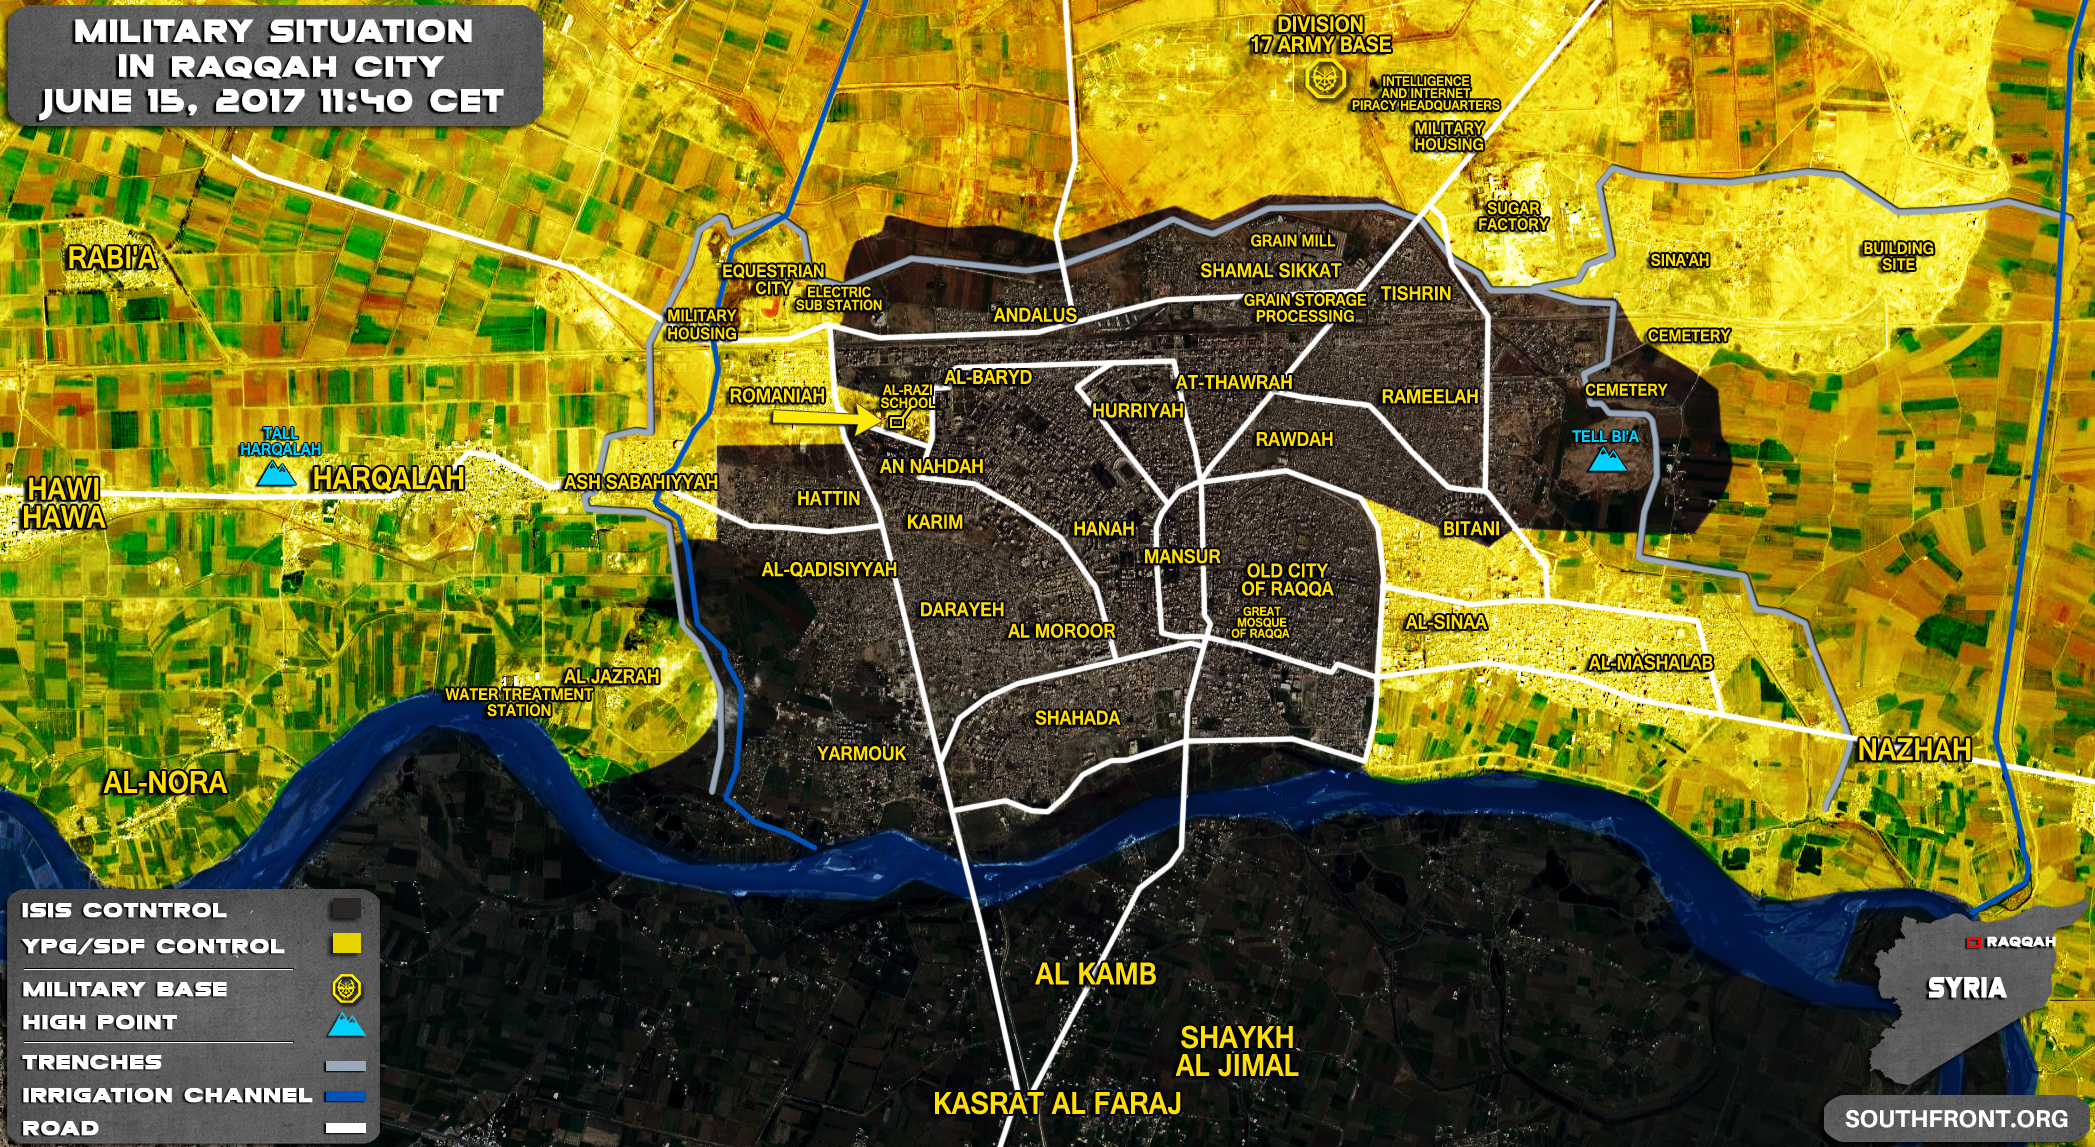 [BIZTPOL] Szíria és Irak - 6. - Page 6 15jun_Raqqah_city_Syria_War_Map